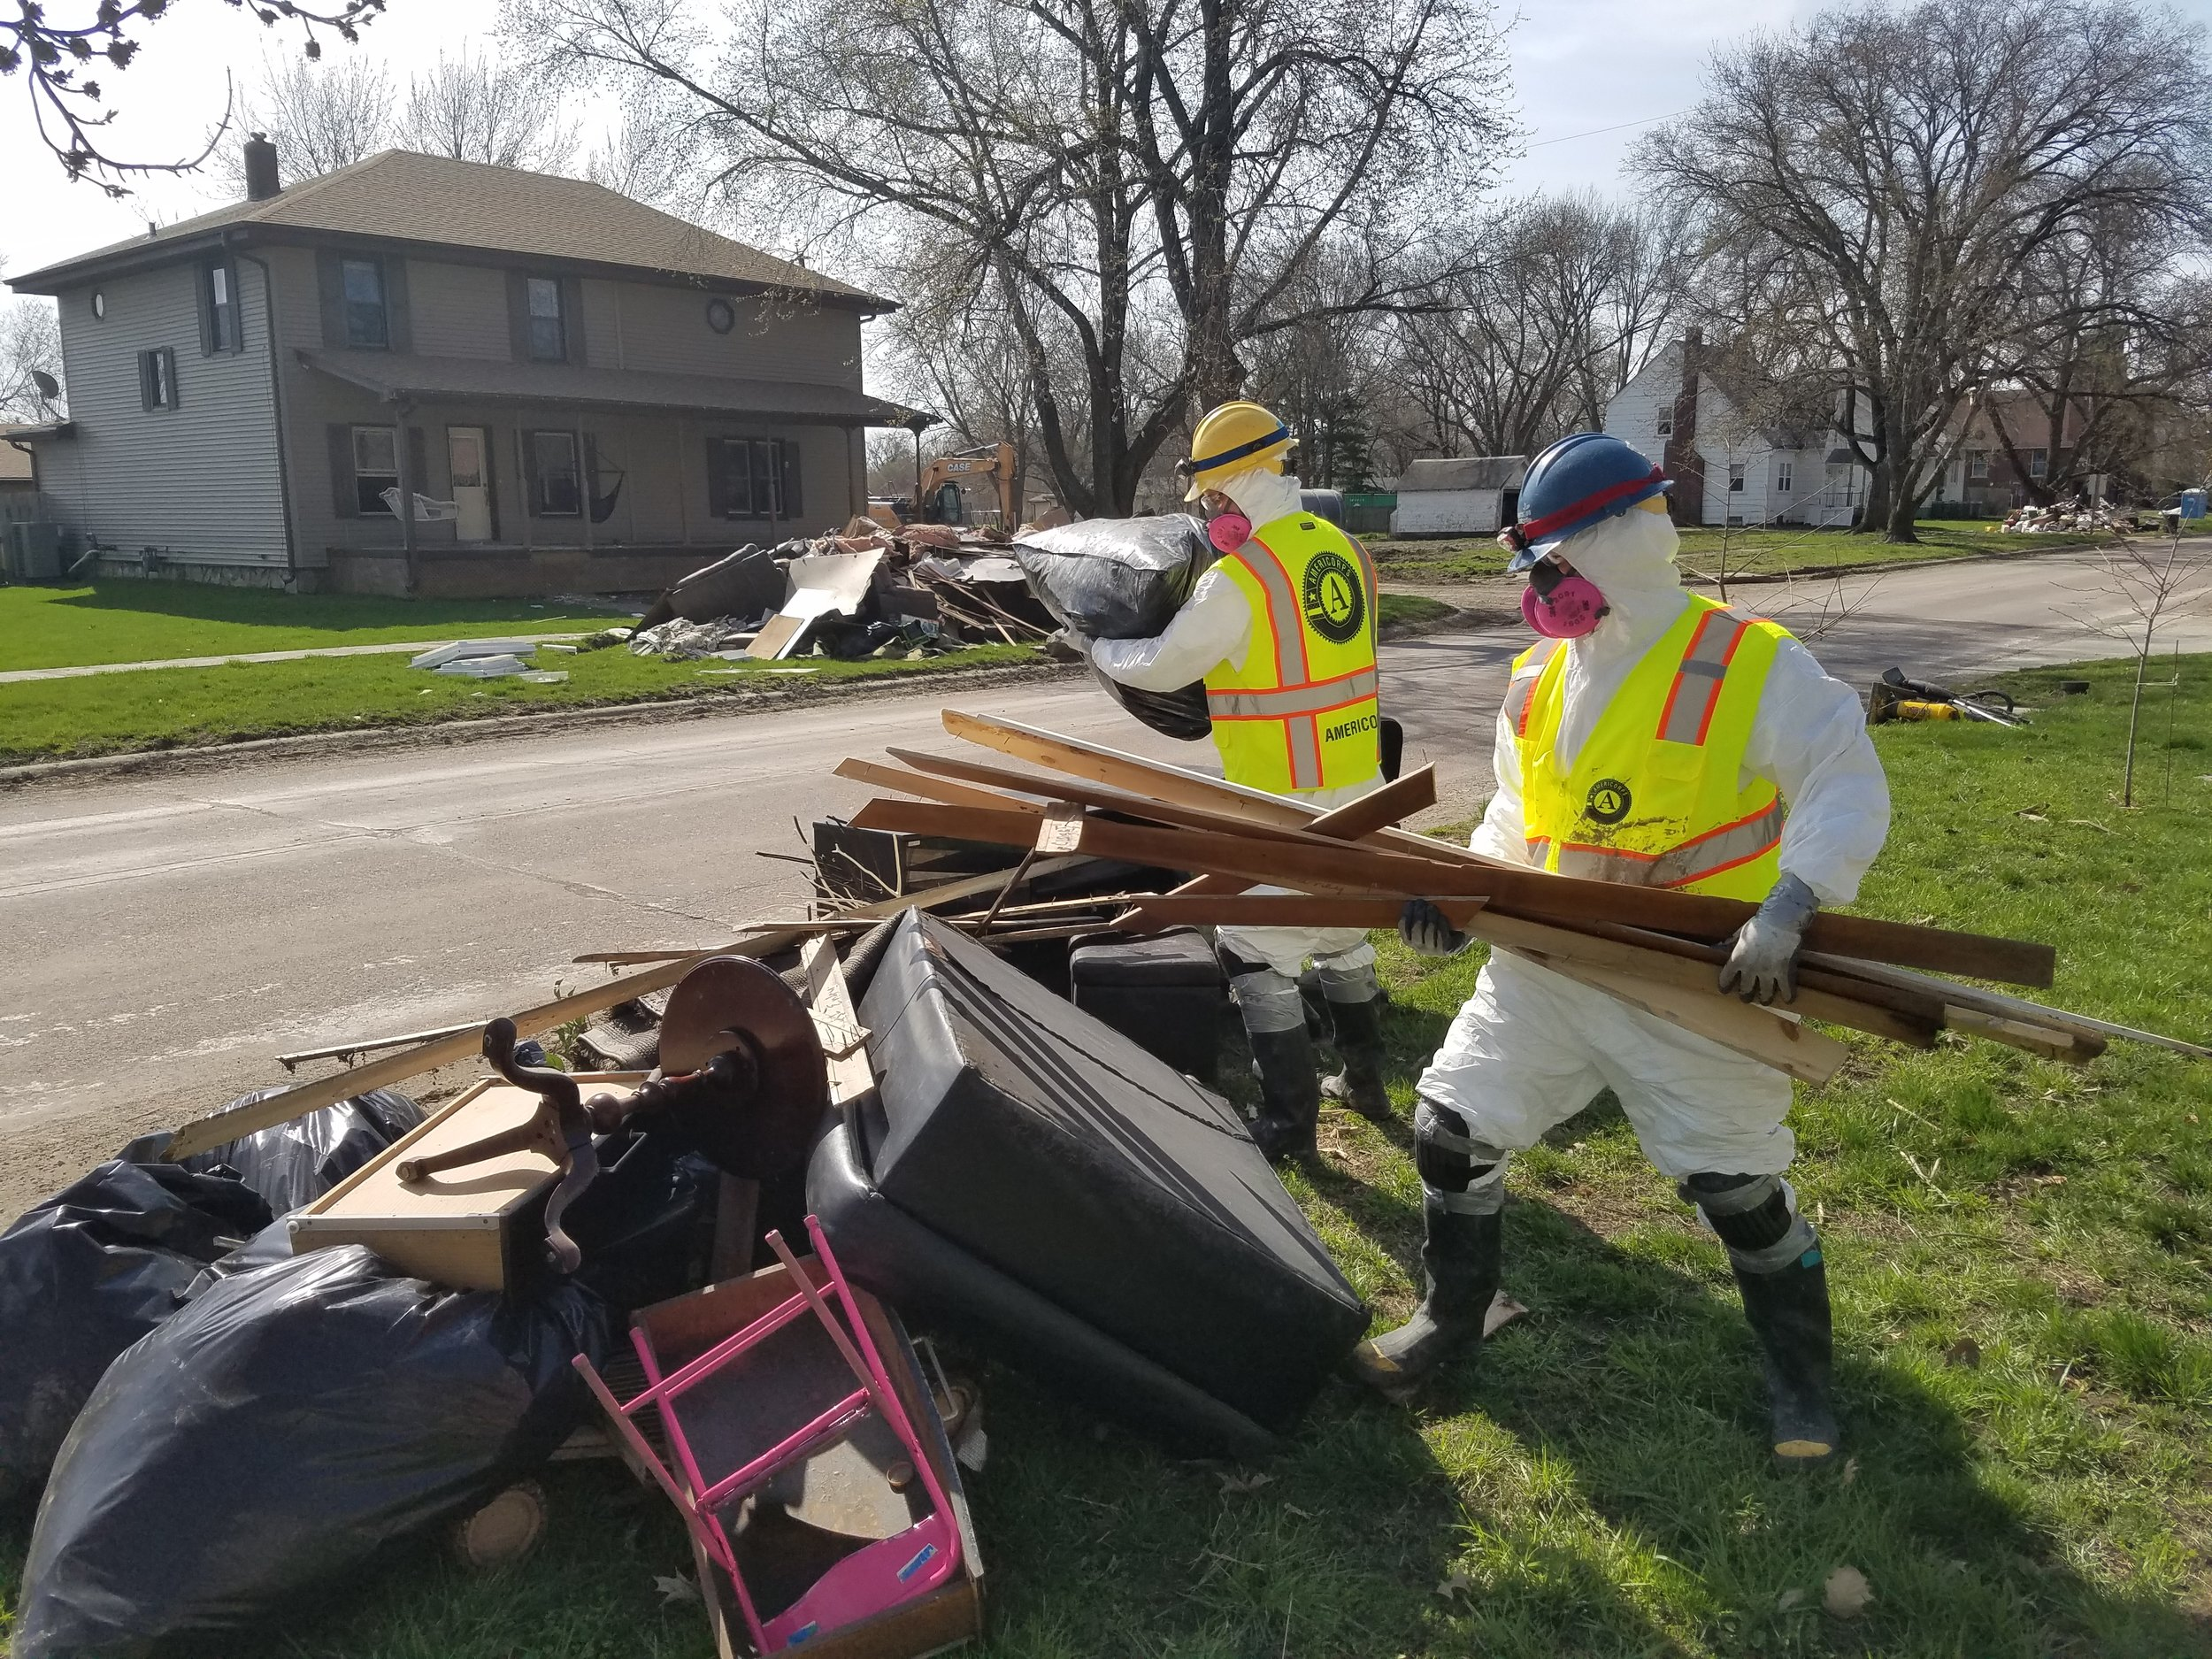 In April 2019, AmeriCorps members helped residents remove debris and personal items from homes damaged by flooding in Hamburg, Iowa.